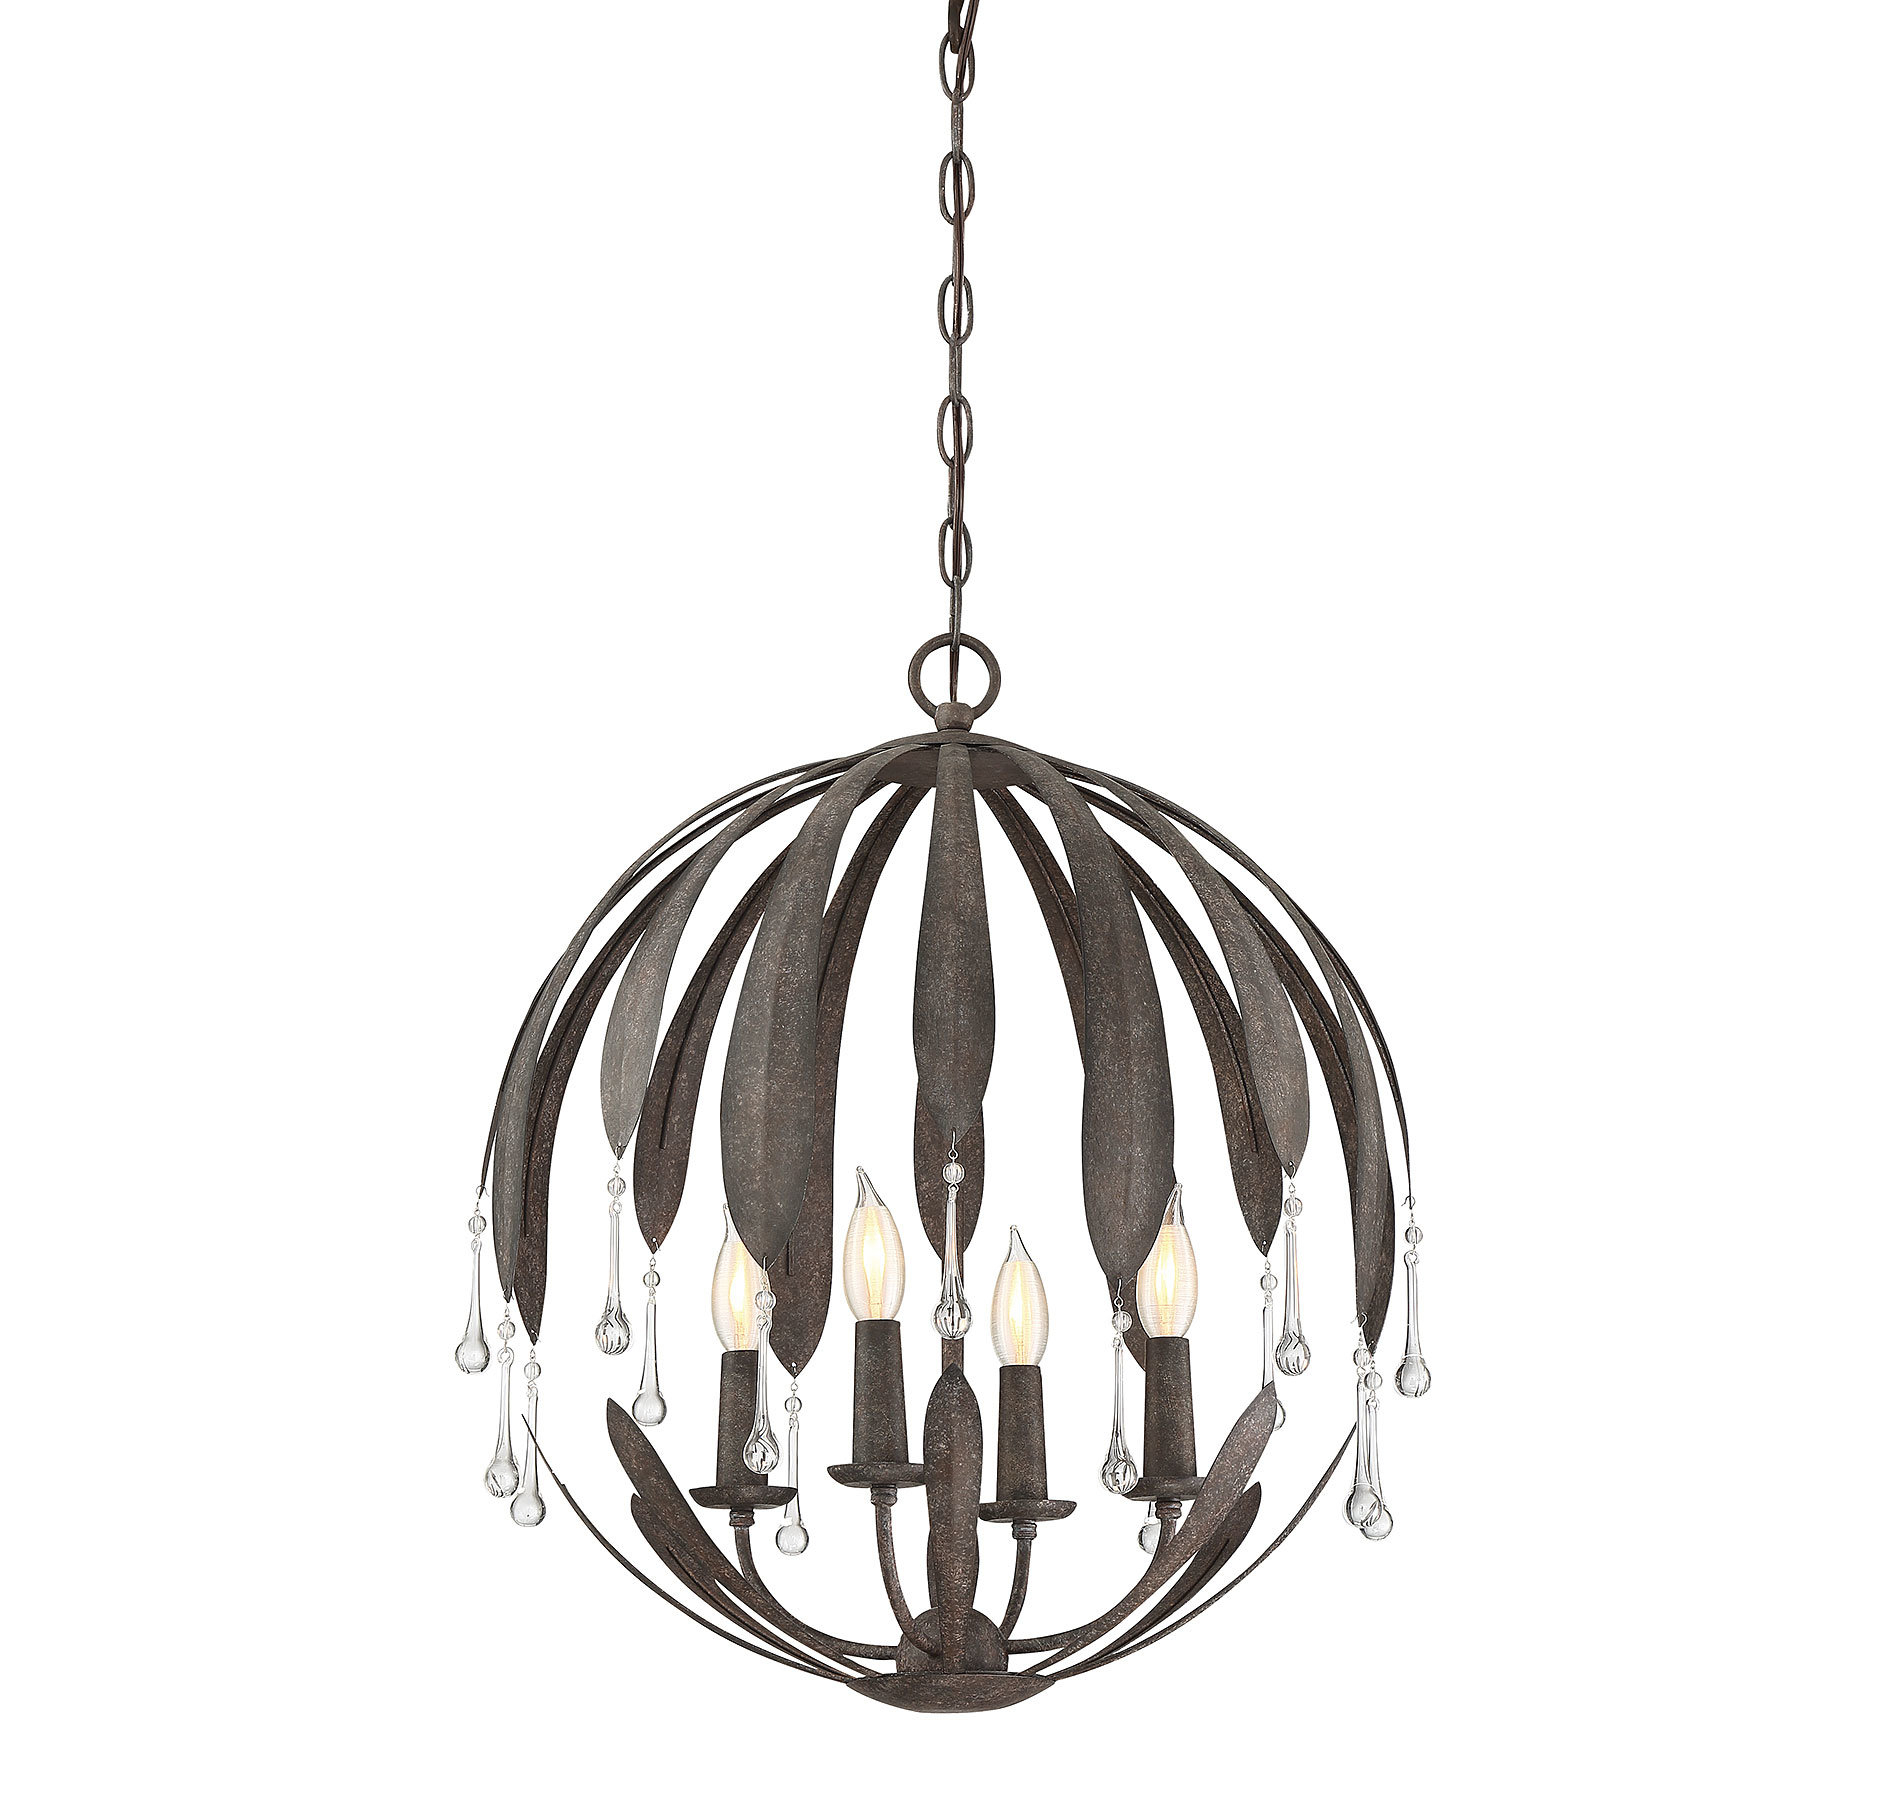 Wyant 4-Light Chandelier with regard to Morganti 4-Light Chandeliers (Image 29 of 30)